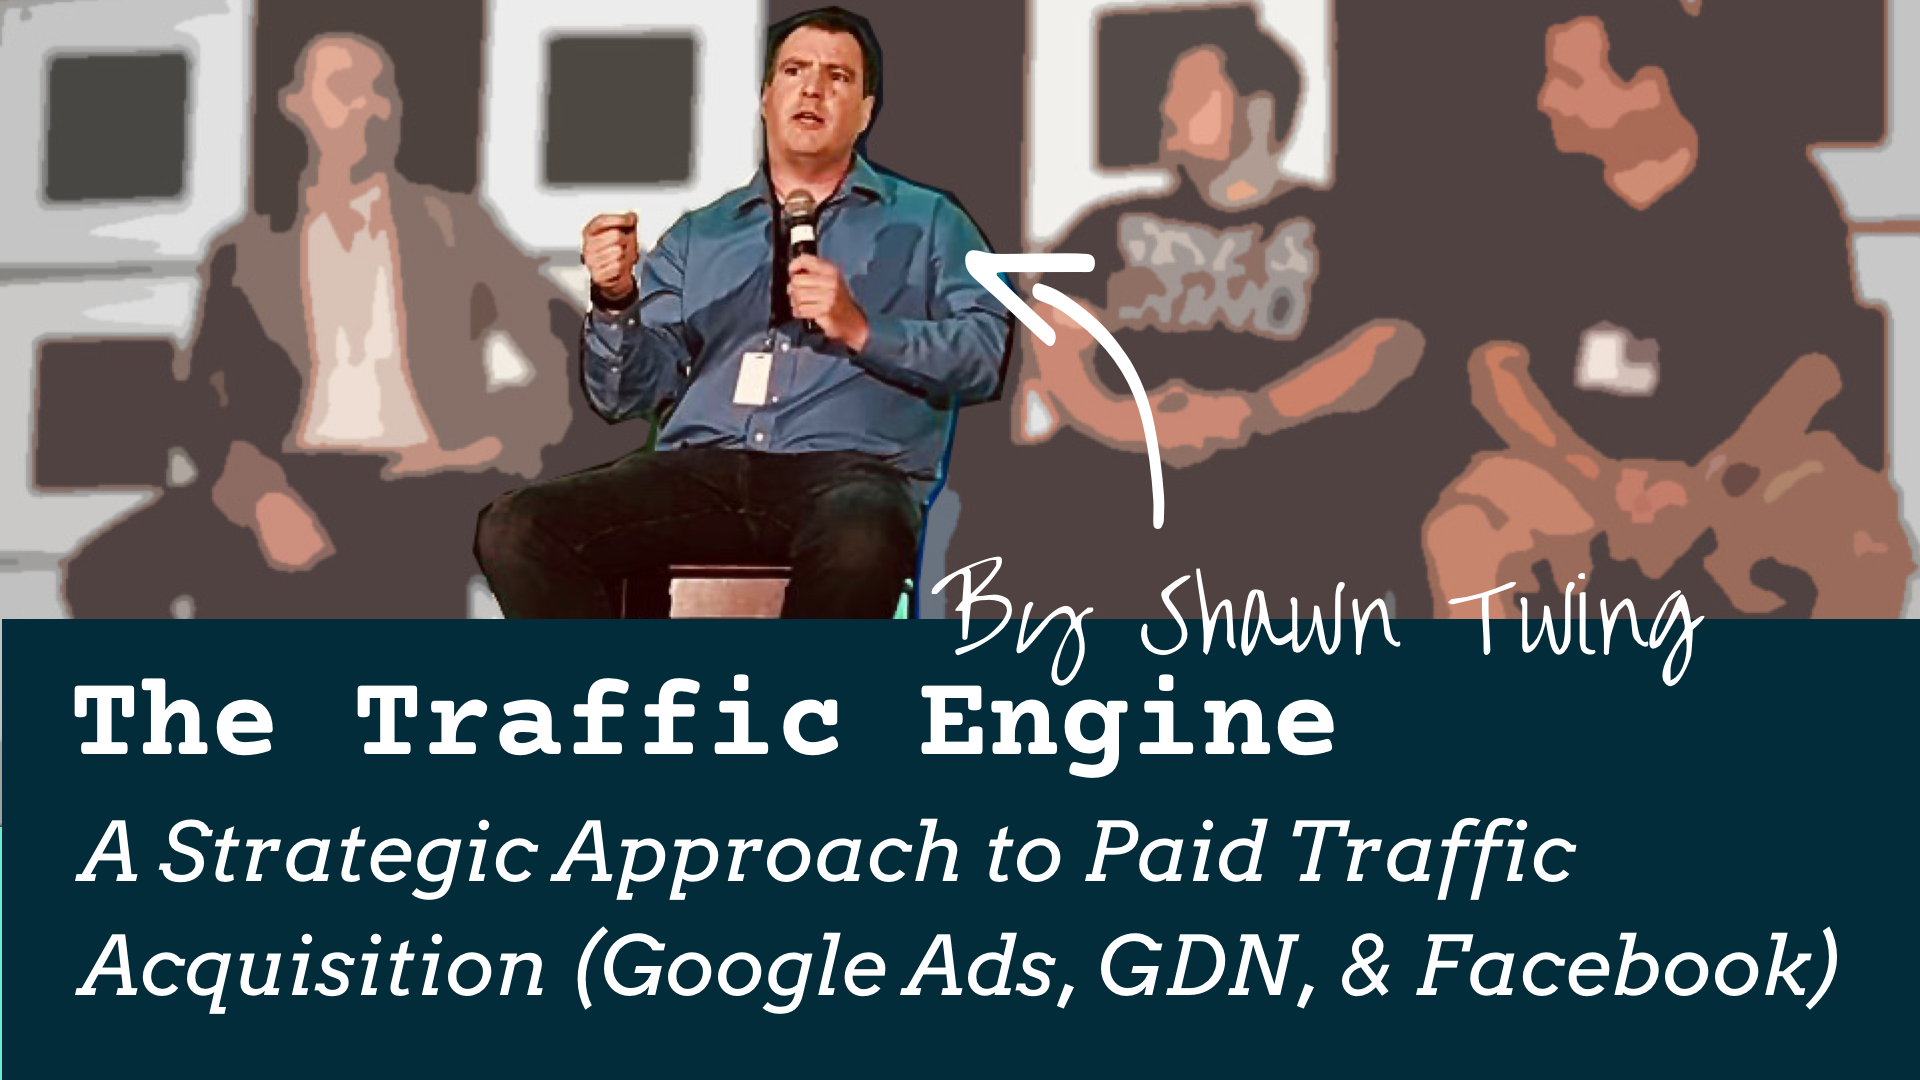 The Traffic Engine (by Shawn Twing)